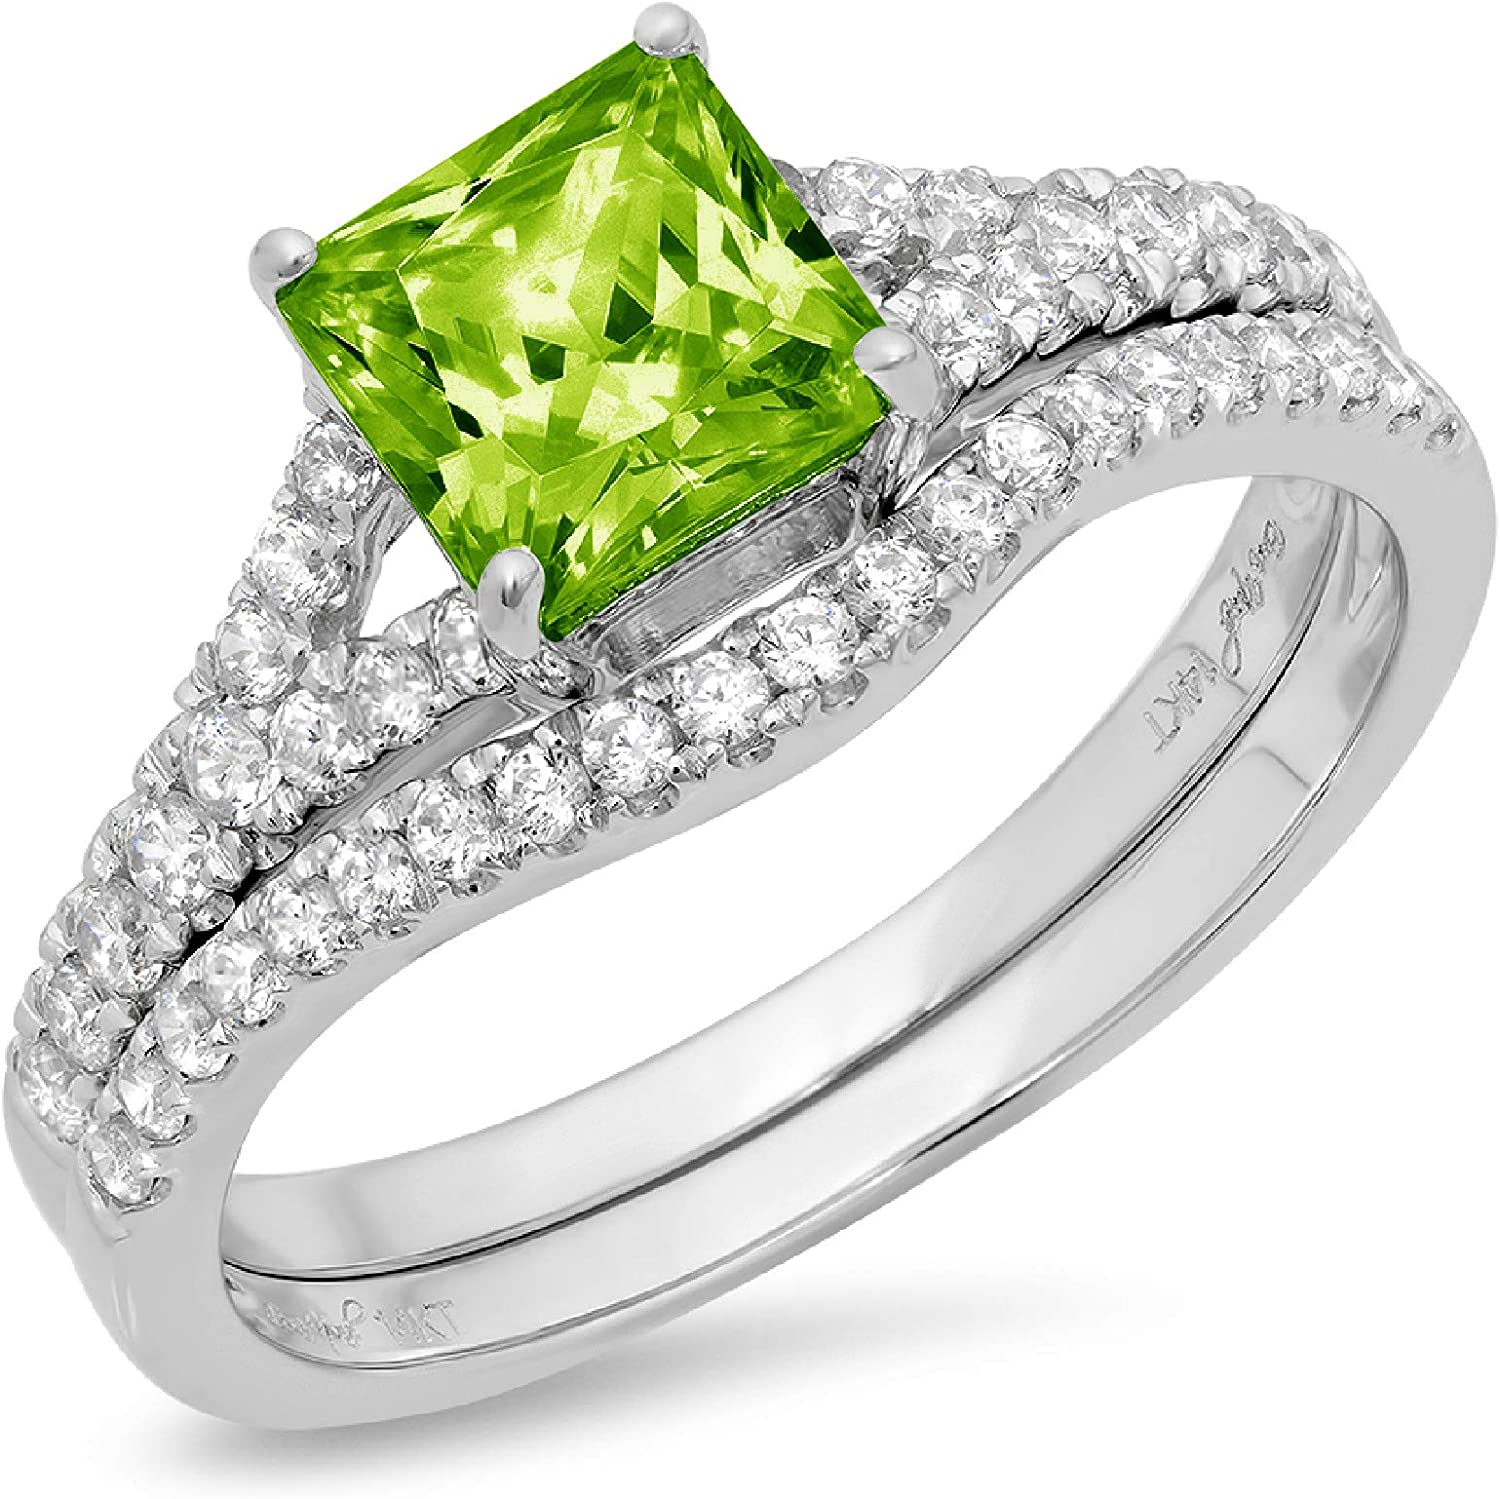 1.95ct Princess Cut Pave Solitaire with Accent VVS1 Ideal Flawless Genuine Natural Vivid Green Peridot Engagement Promise Designer Anniversary Wedding Bridal Ring band set Curved 14k White Gold